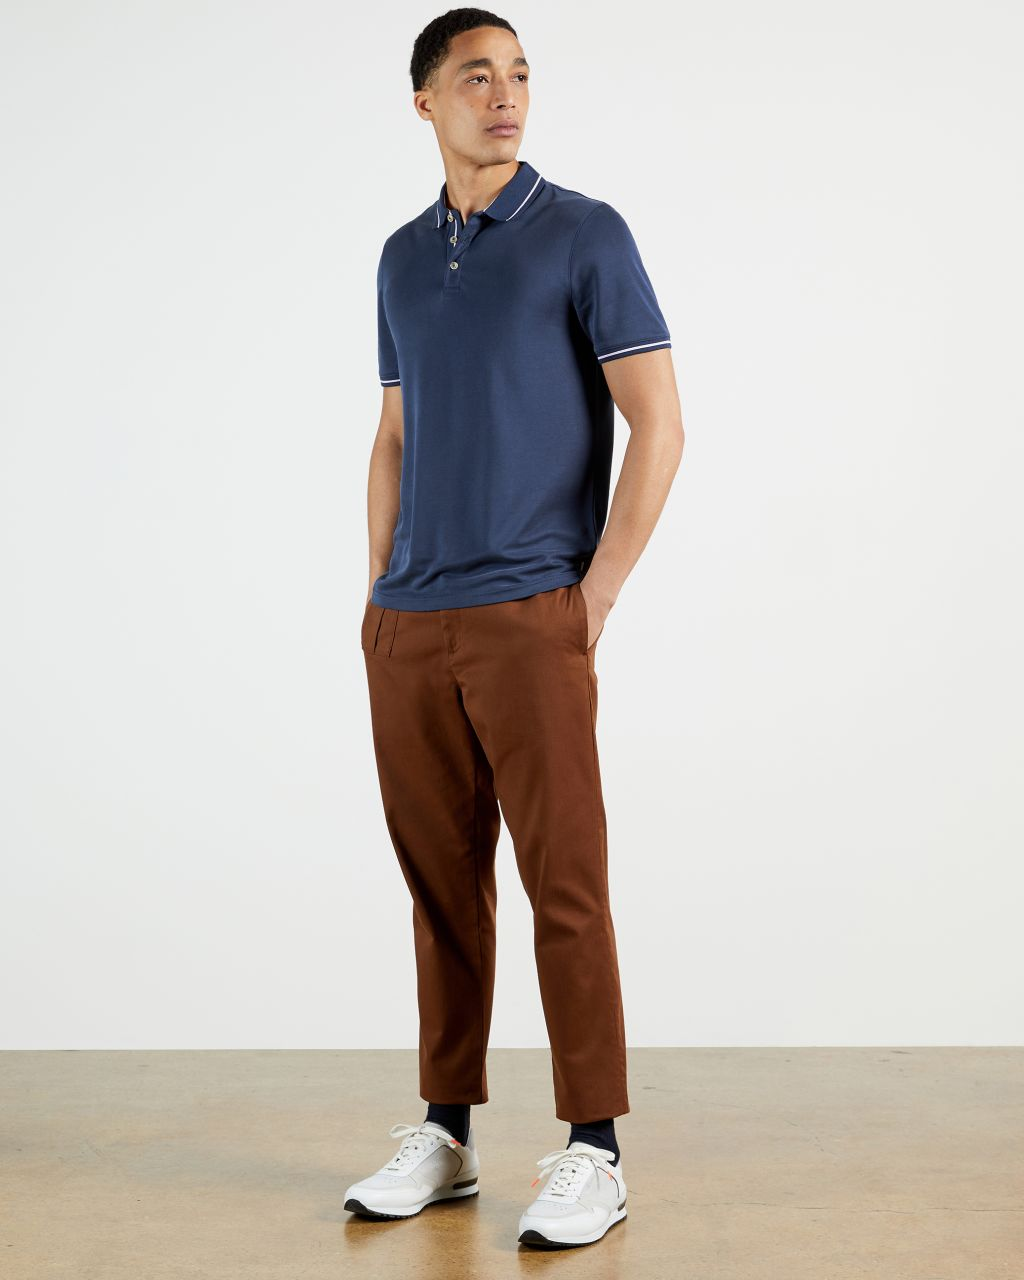 TED BAKER Soft Touch Polo | TED BAKER SALE